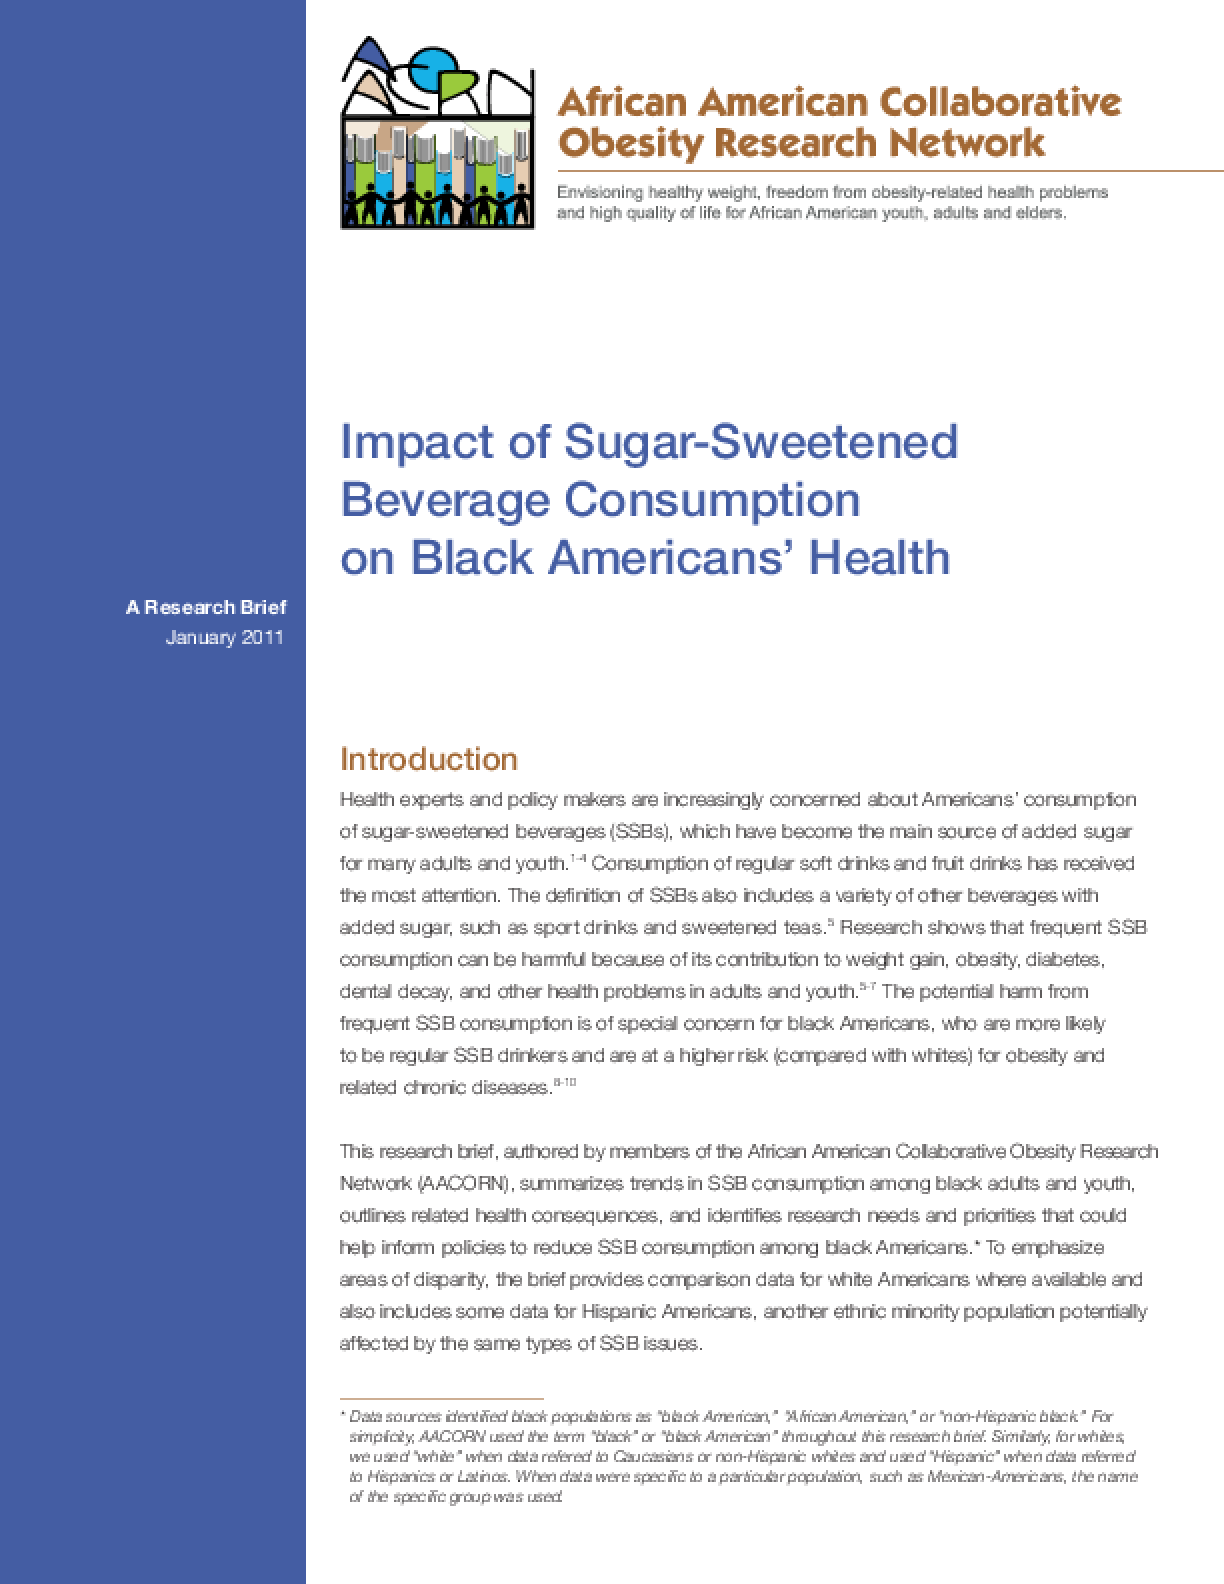 Sugar-Sweetened Beverage Consumption Among Black Americans